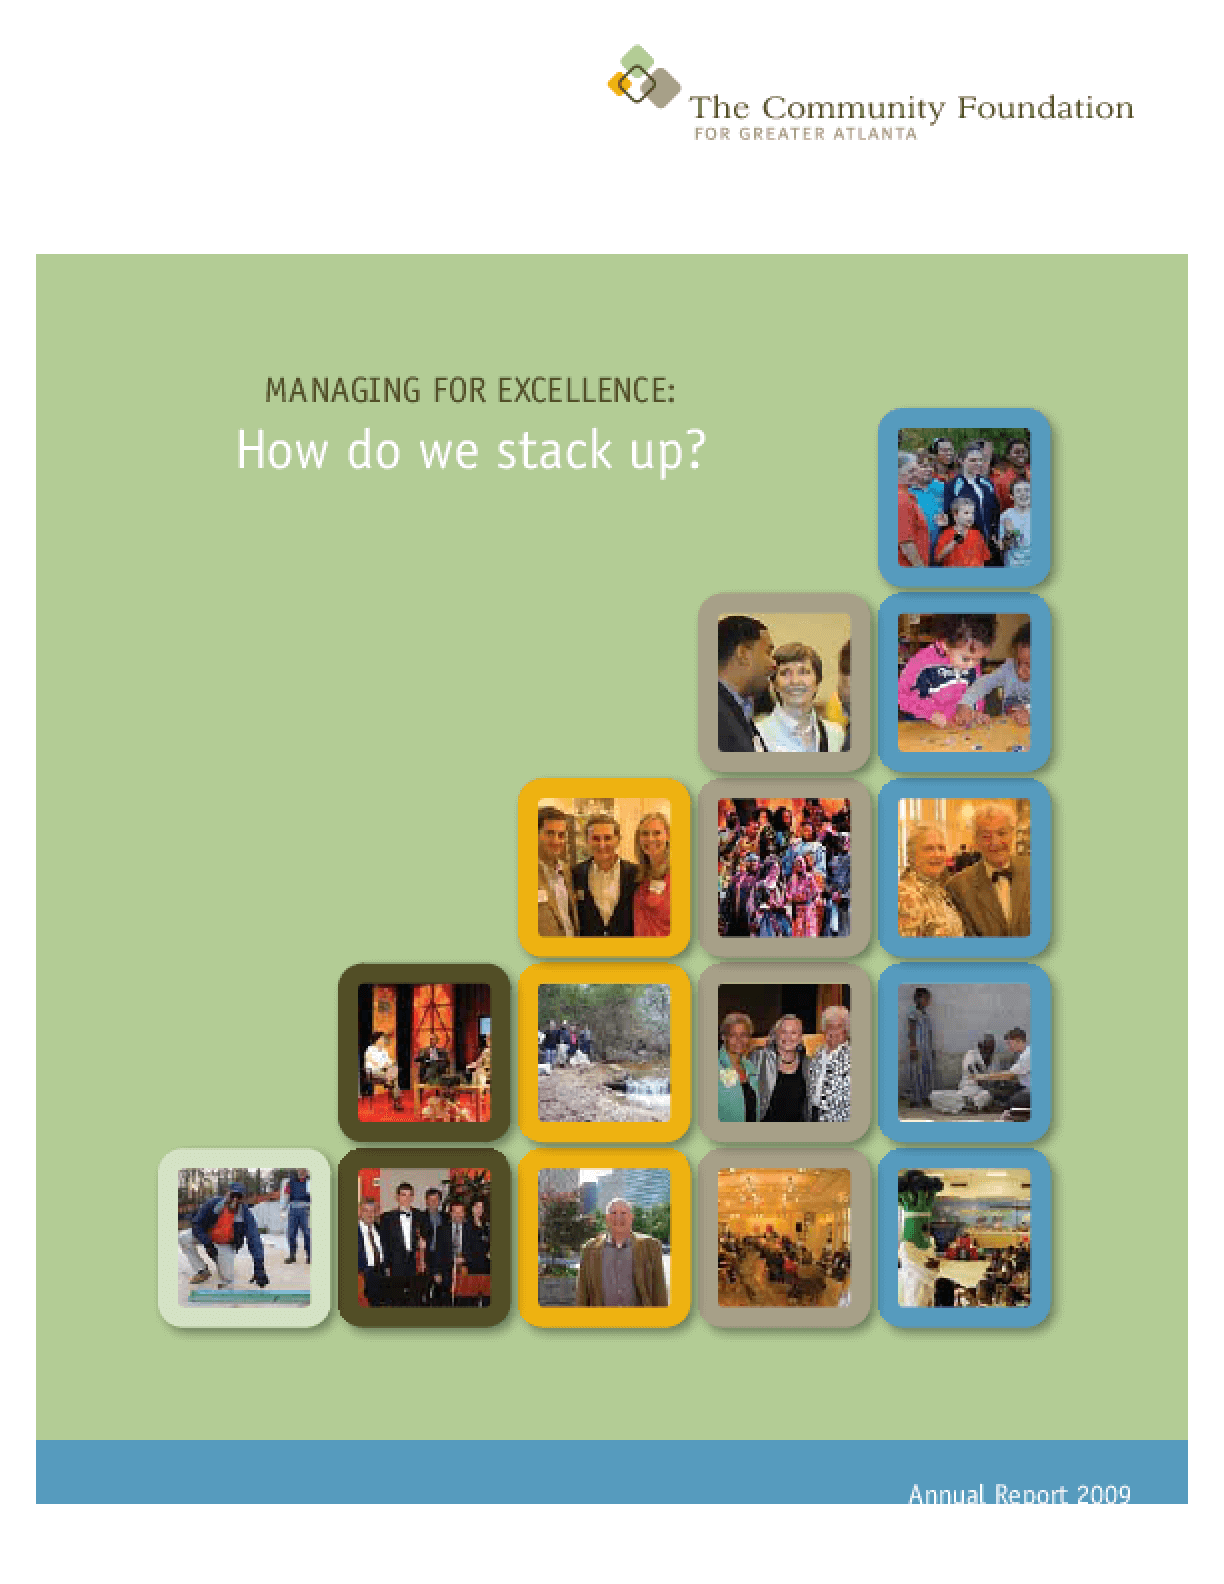 Community Foundation for Greater Atlanta - 2009 Annual Report: Managing for Excellence: How Do We Stack Up?